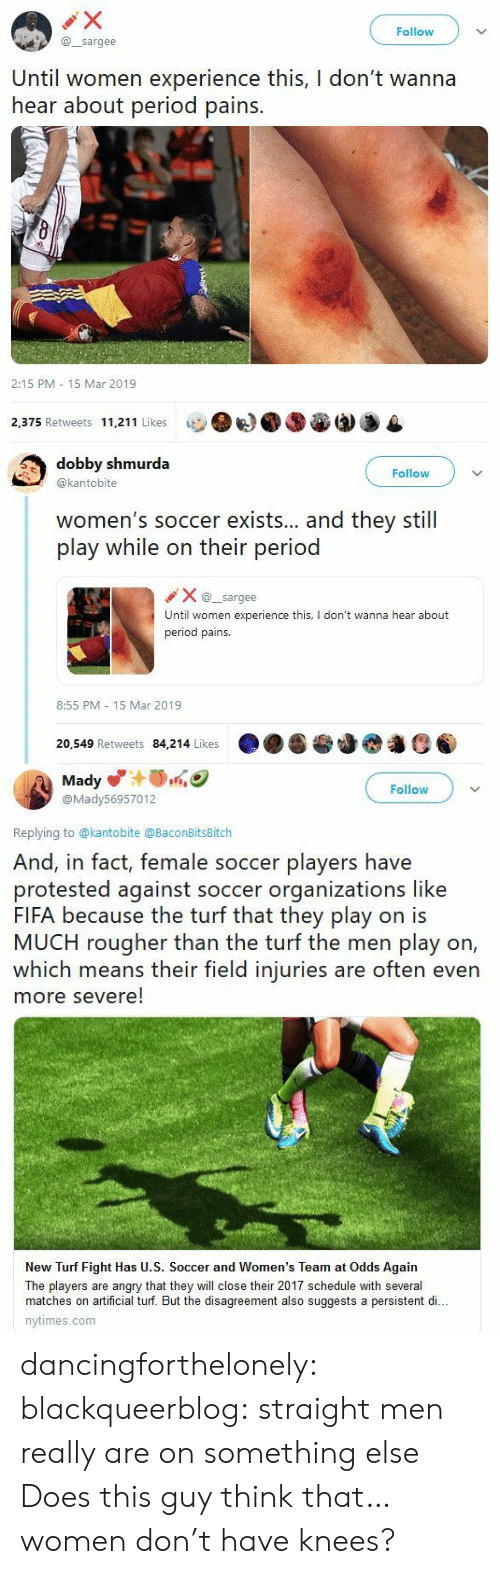 Fifa, Period, and Soccer: Follow  @sargee  Until women experience this, I don't wanna  hear about period pains.  2:15 PM 15 Mar 2019  2,375 Retweets 11,211 Likes   dobby shmurda  @kantobite  Follow  women's soccer exists... and they still  play while on their period  Xsargee  Until women experience this, I don't wanna hear about  period pains.  8:55 PM 15 Mar 2019  20,549 Retweets 84,214 Likes   Mady  @Mady56957012  Follow  Replying to @kantobite @BaconBitsBitch  And, in fact, female soccer players have  protested against soccer organizations like  FIFA because the turf that they play on is  MUCH rougher than the turf the men play on,  which means their field injuries are often even  more severe!  New Turf Fight Has U.S. Soccer and Women's Team at Odds Again  The players are angry that they will close their 2017 schedule with several  matches on artificial turf. But the disagreement also suggests a persistent di..  nytimes.com dancingforthelonely:  blackqueerblog:   straight men really are on something else    Does this guy think that…women don't have knees?